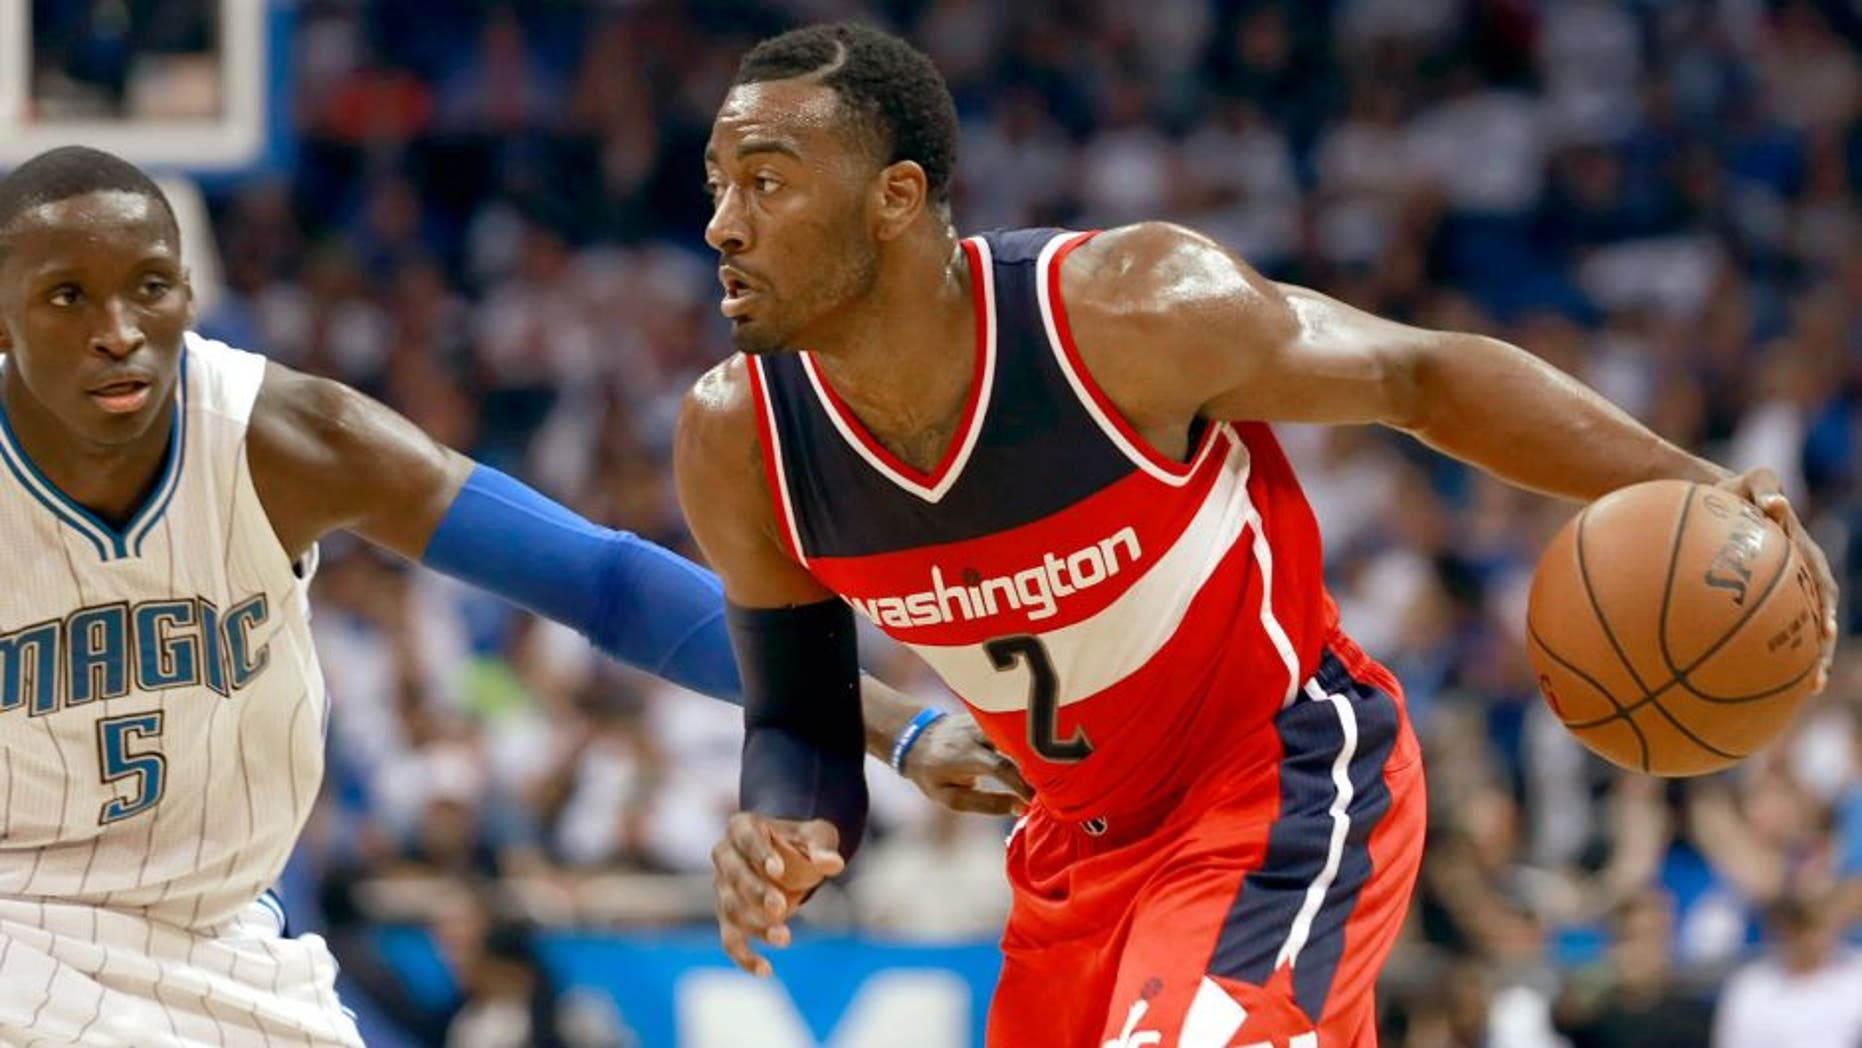 Oct 28, 2015; Orlando, FL, USA; Washington Wizards guard John Wall (2) drives to the basket as Orlando Magic guard Victor Oladipo (5) defends during the second quarter at Amway Center. Mandatory Credit: Kim Klement-USA TODAY Sports